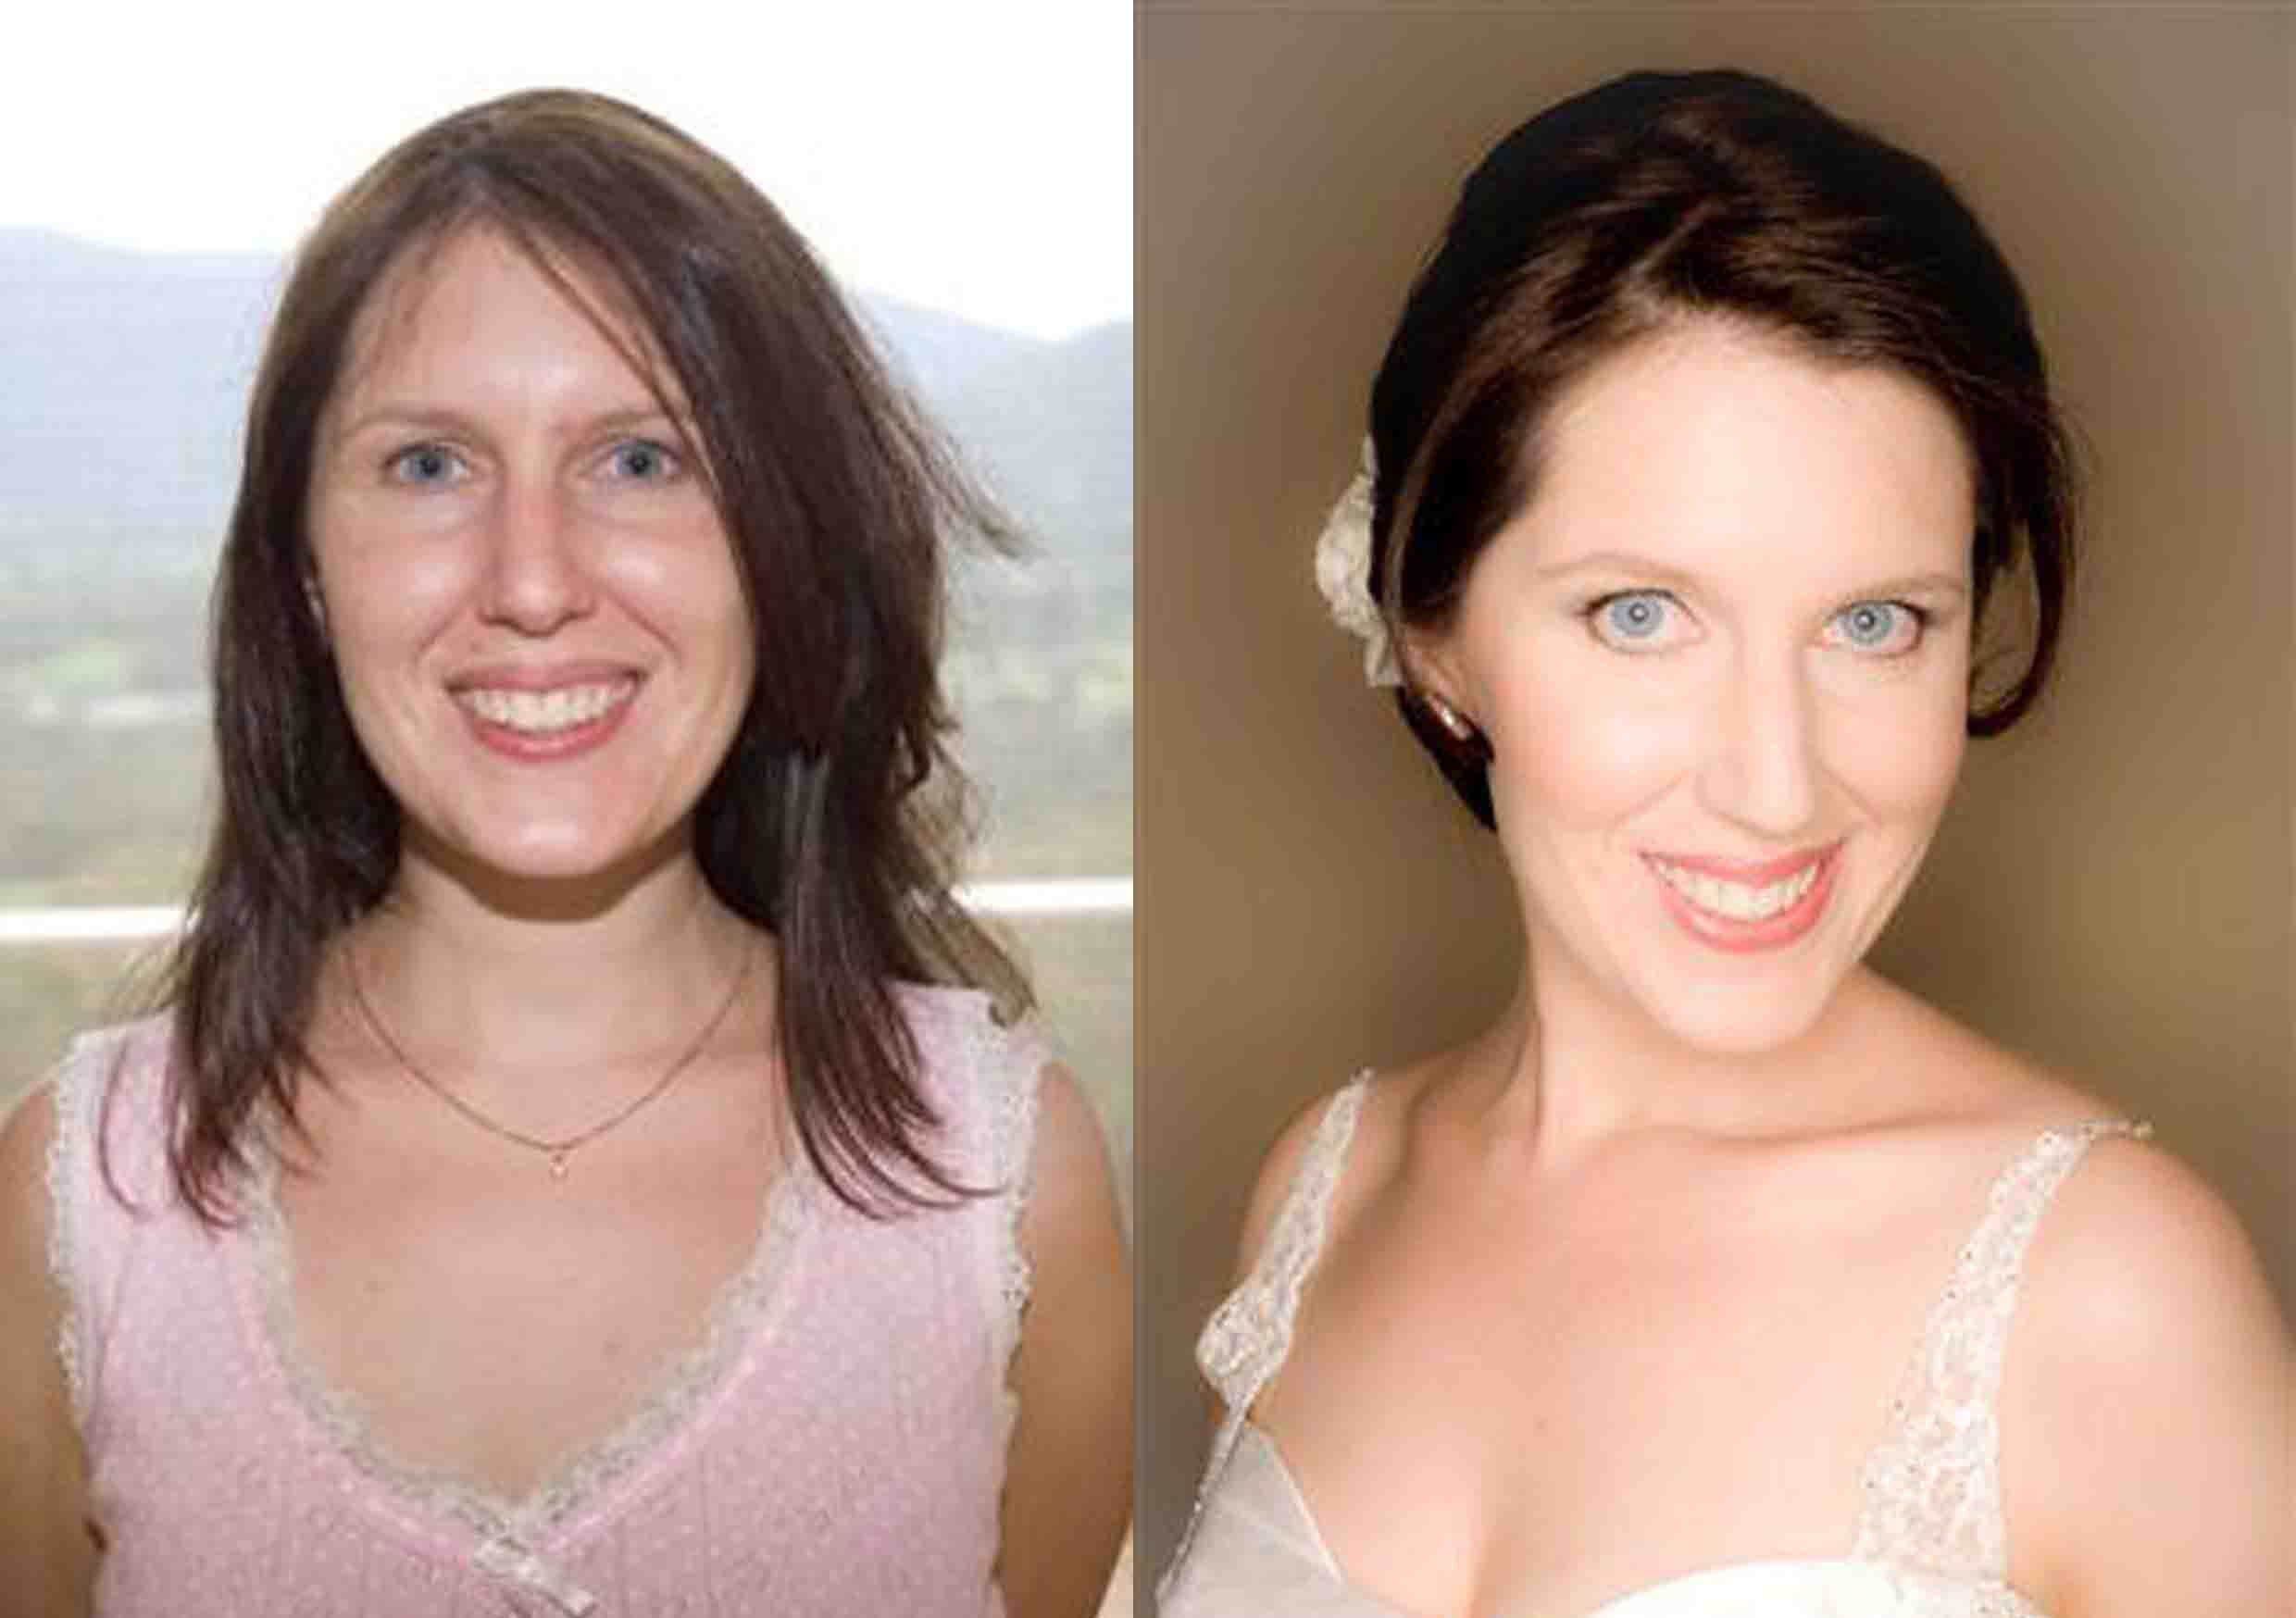 Before and After Brisbane Bridal Hair and Makeup